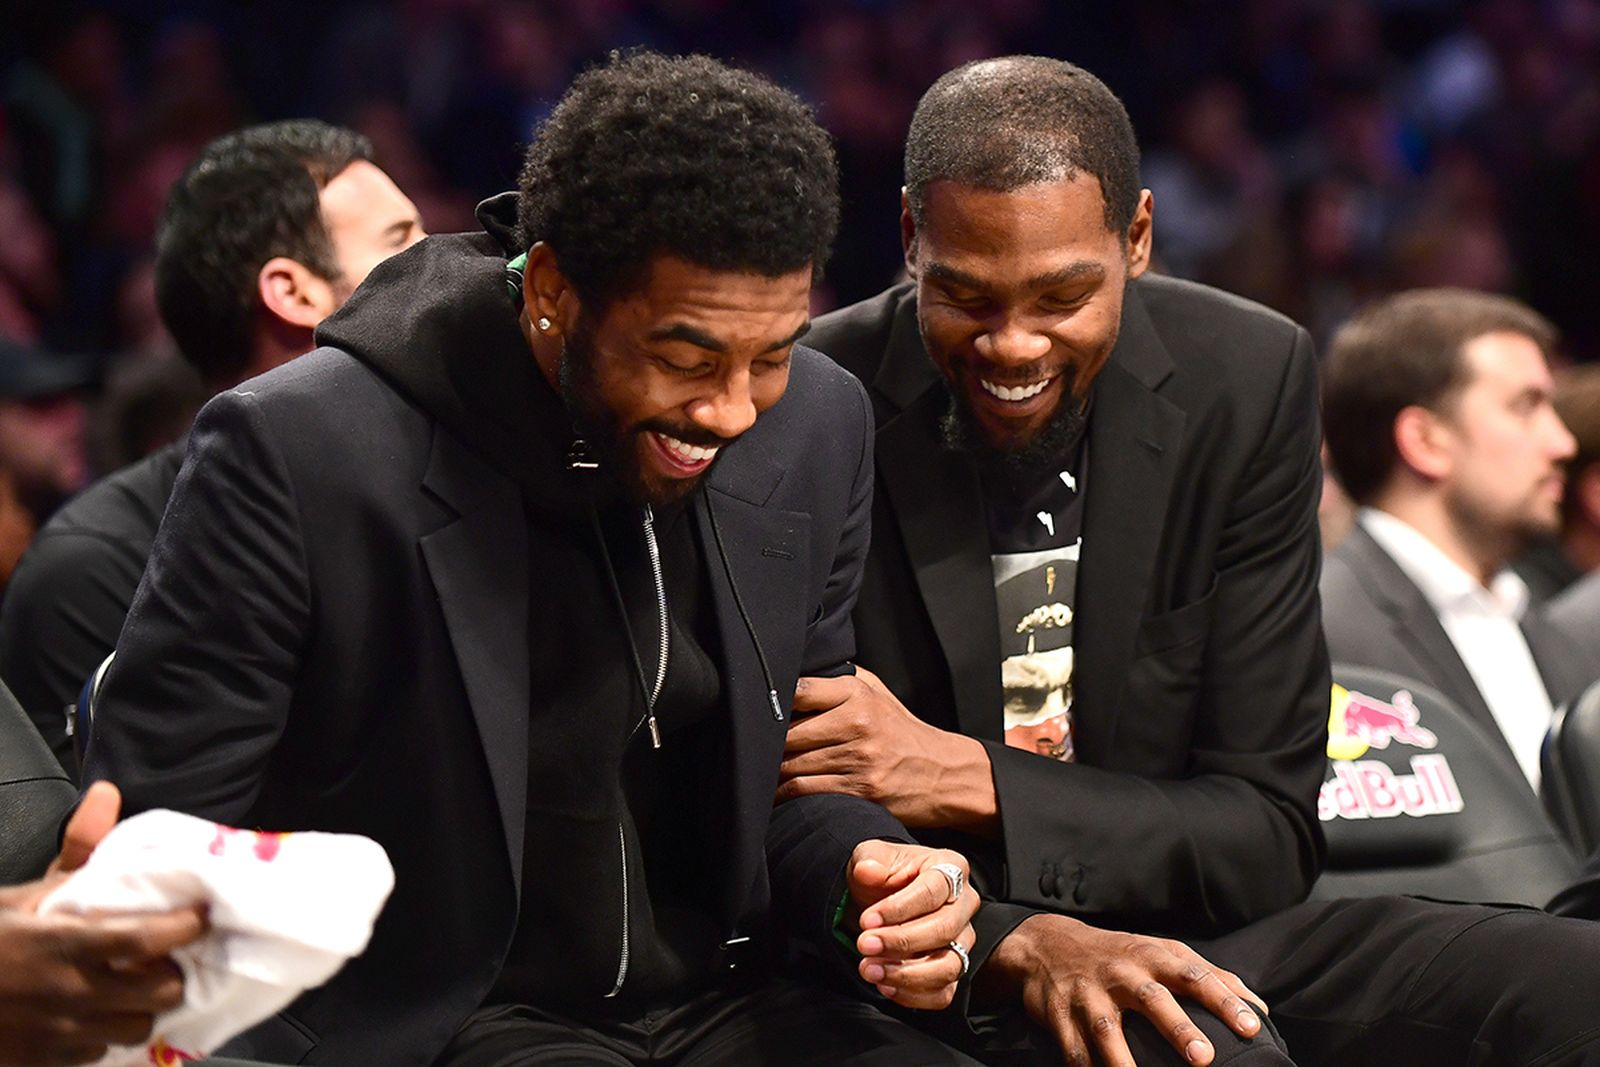 Kyrie Irving Kevin Durant laughing